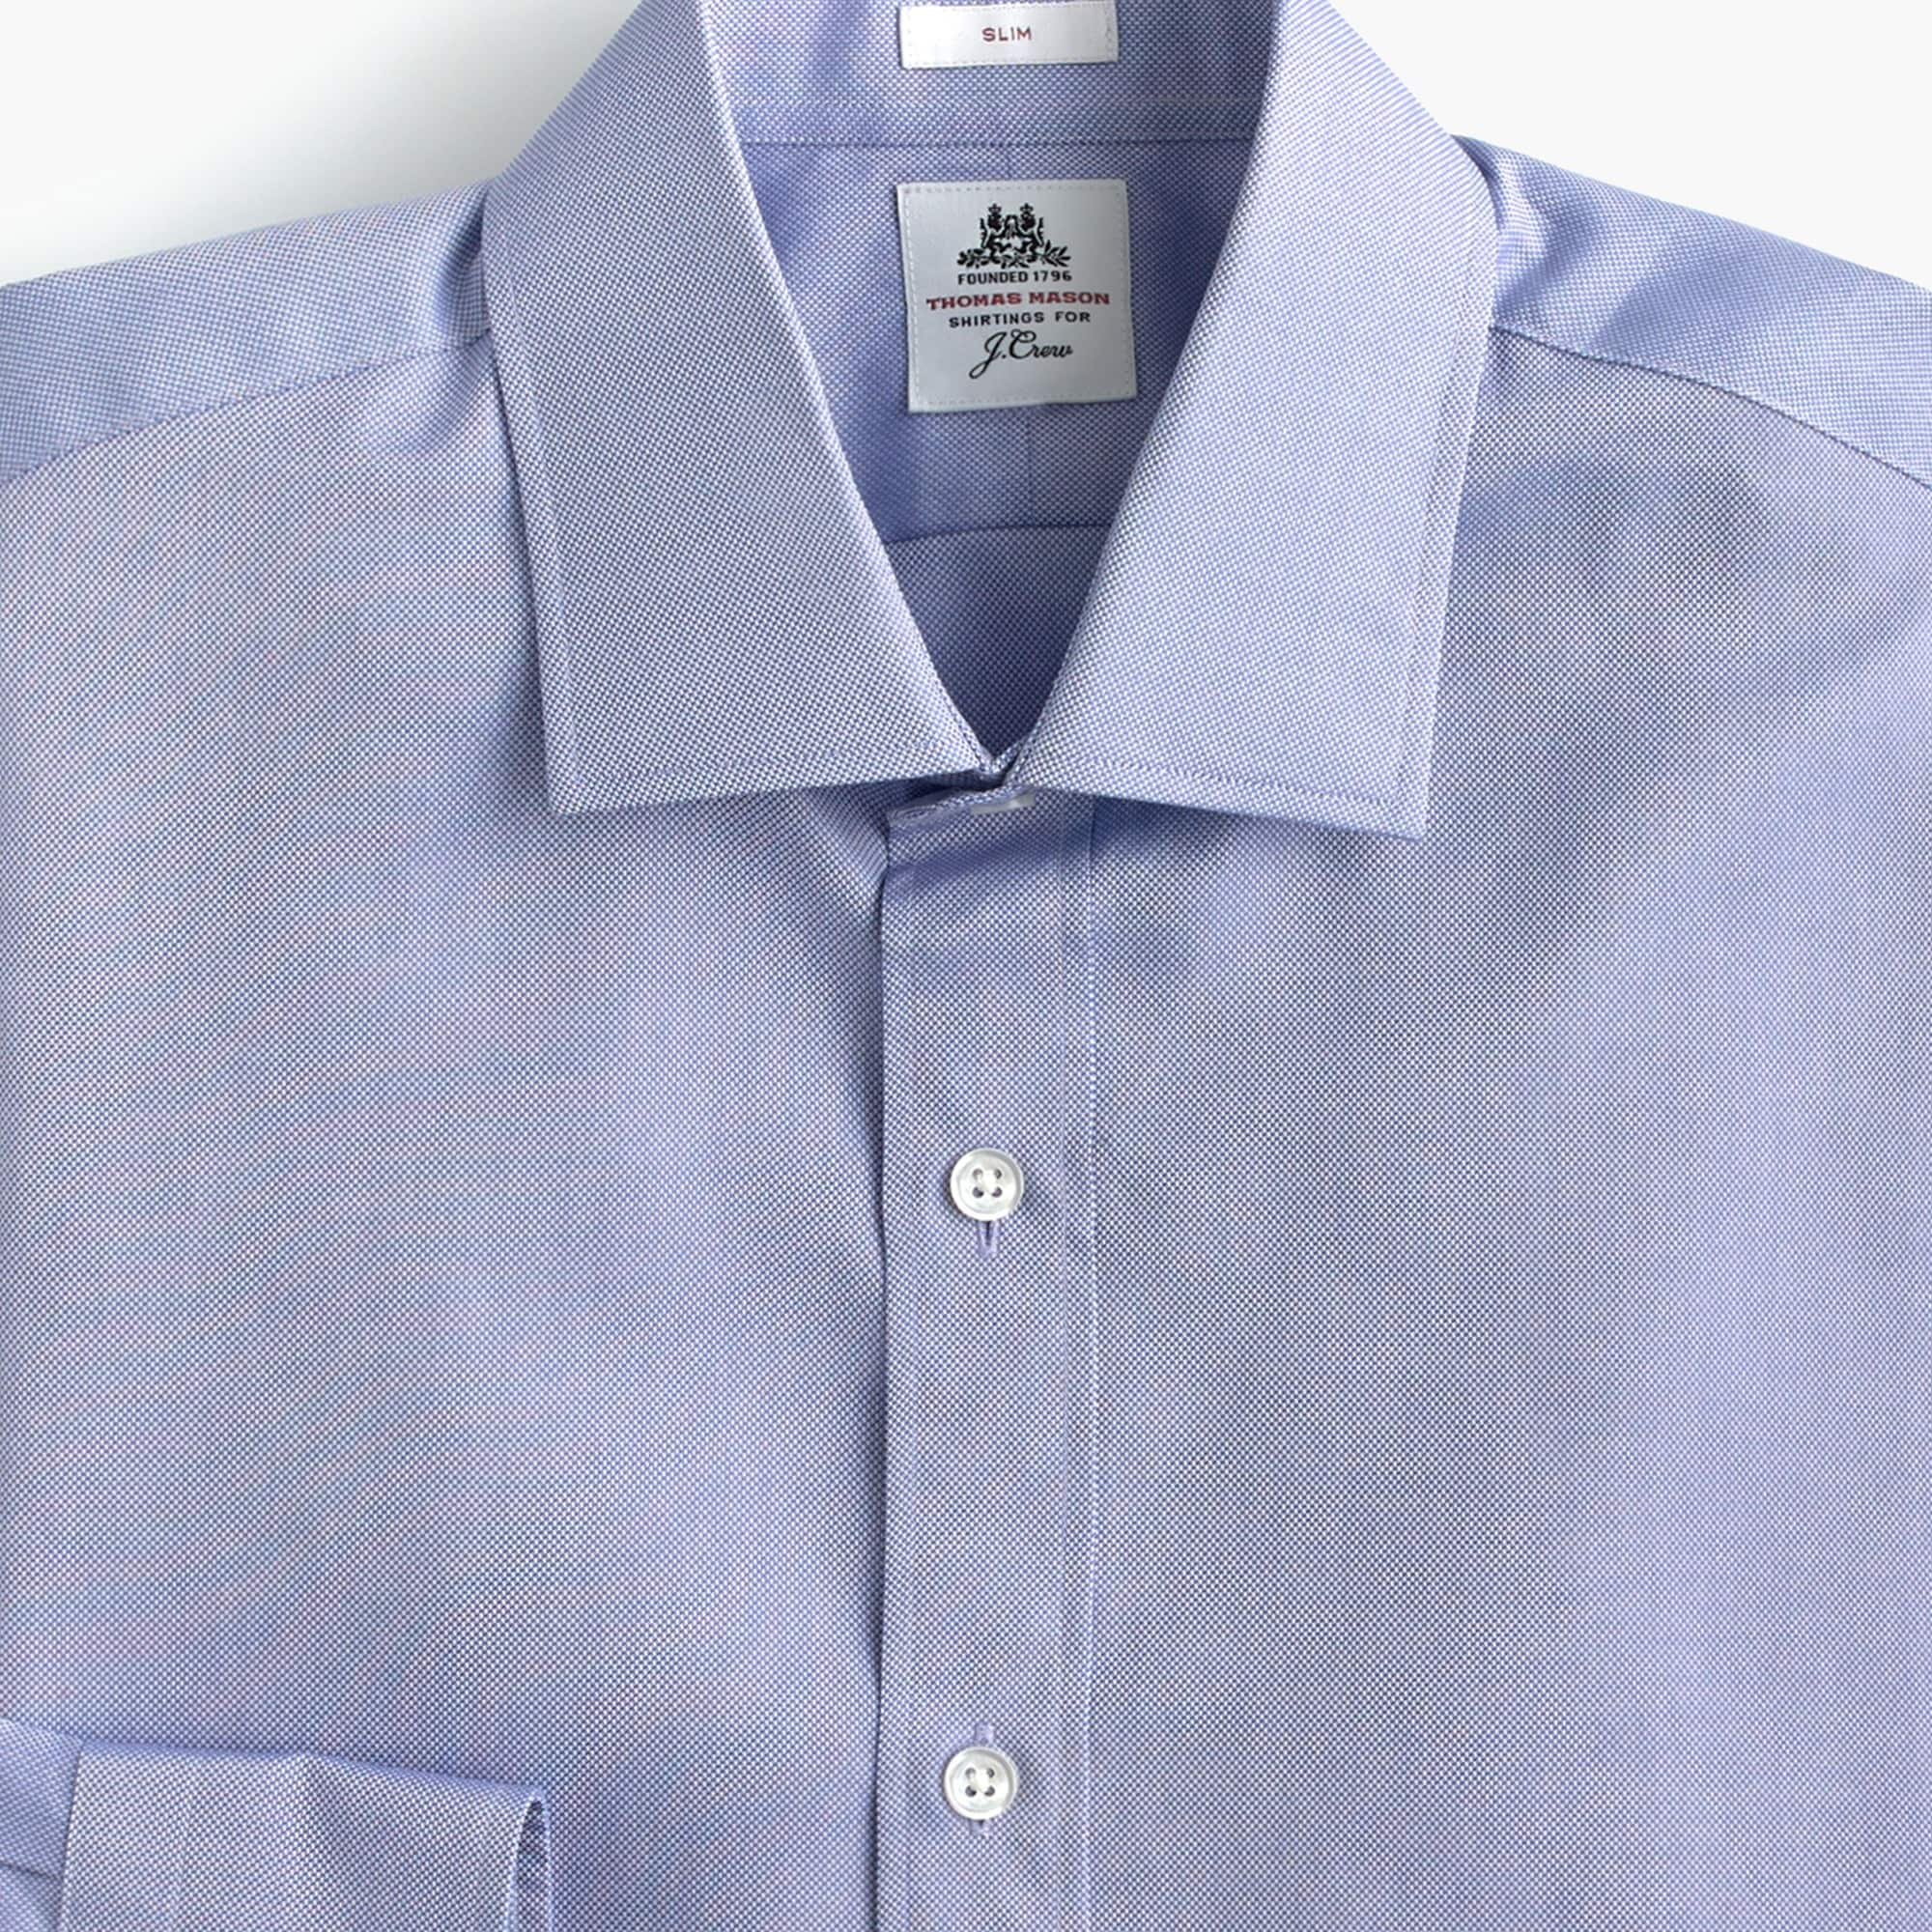 Image 2 for Thomas Mason® for J.Crew two-ply dress shirt in royal oxford cotton